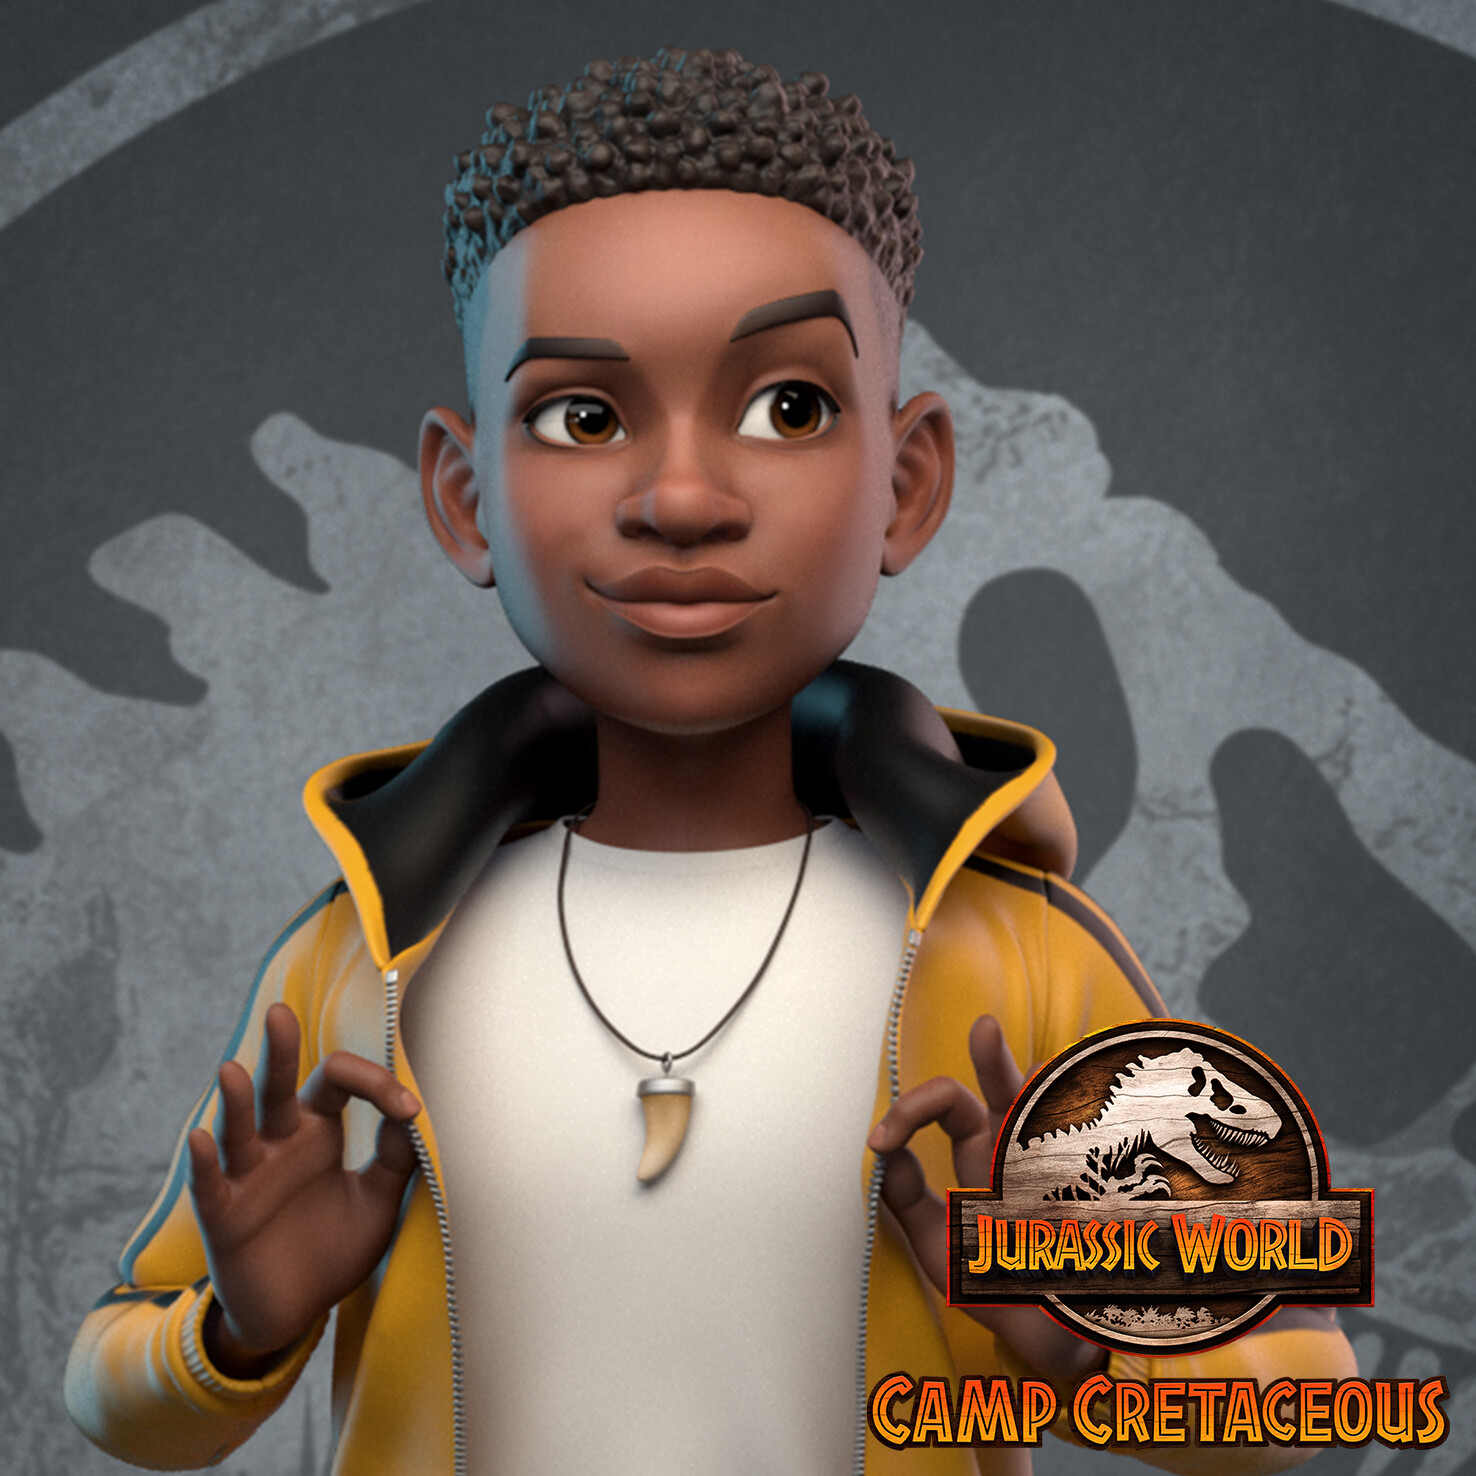 Jurassic World: Camp Cretaceous - Character Modeling